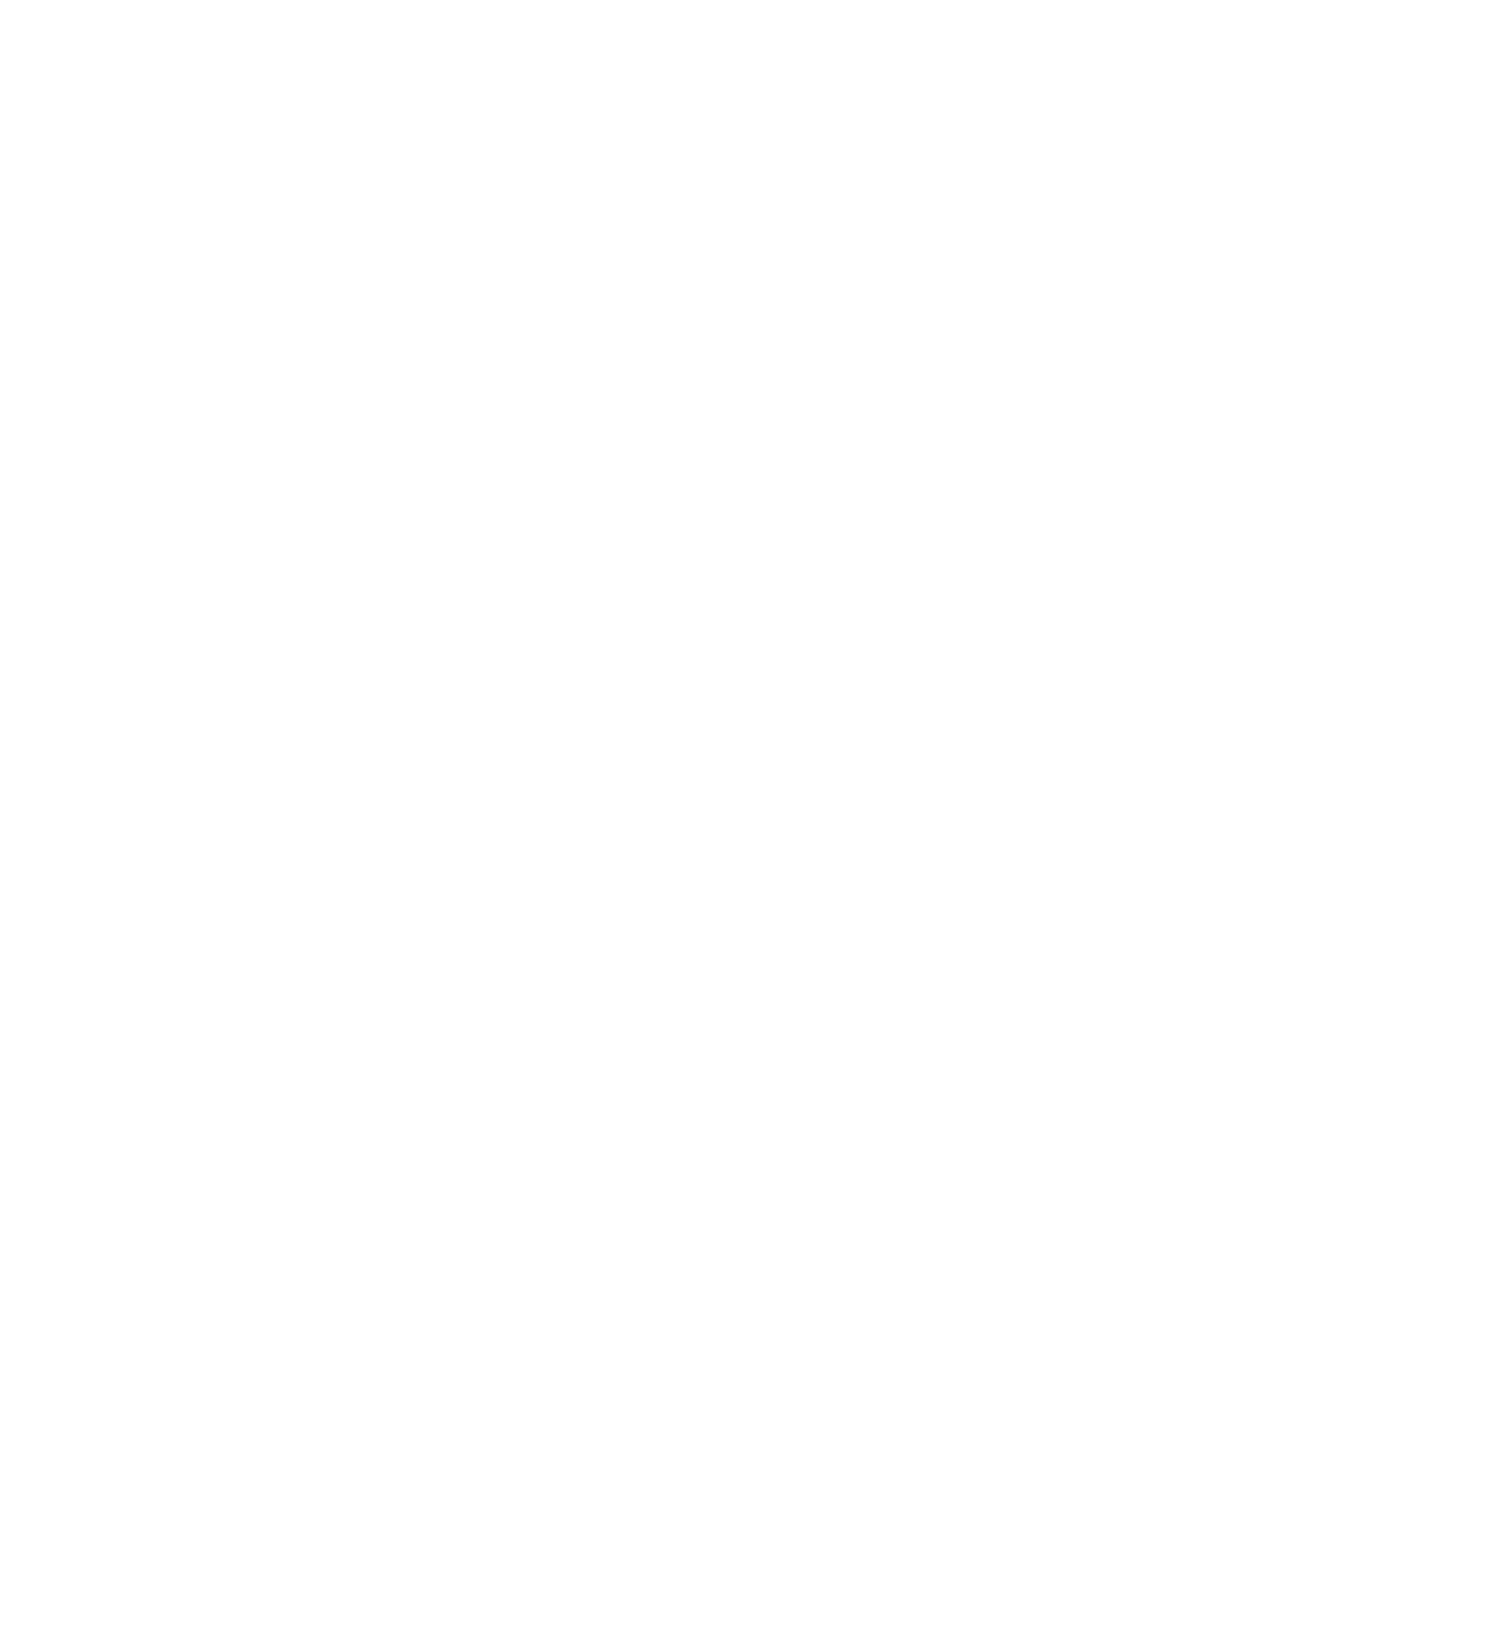 PRIVATE FOOD DESIGN